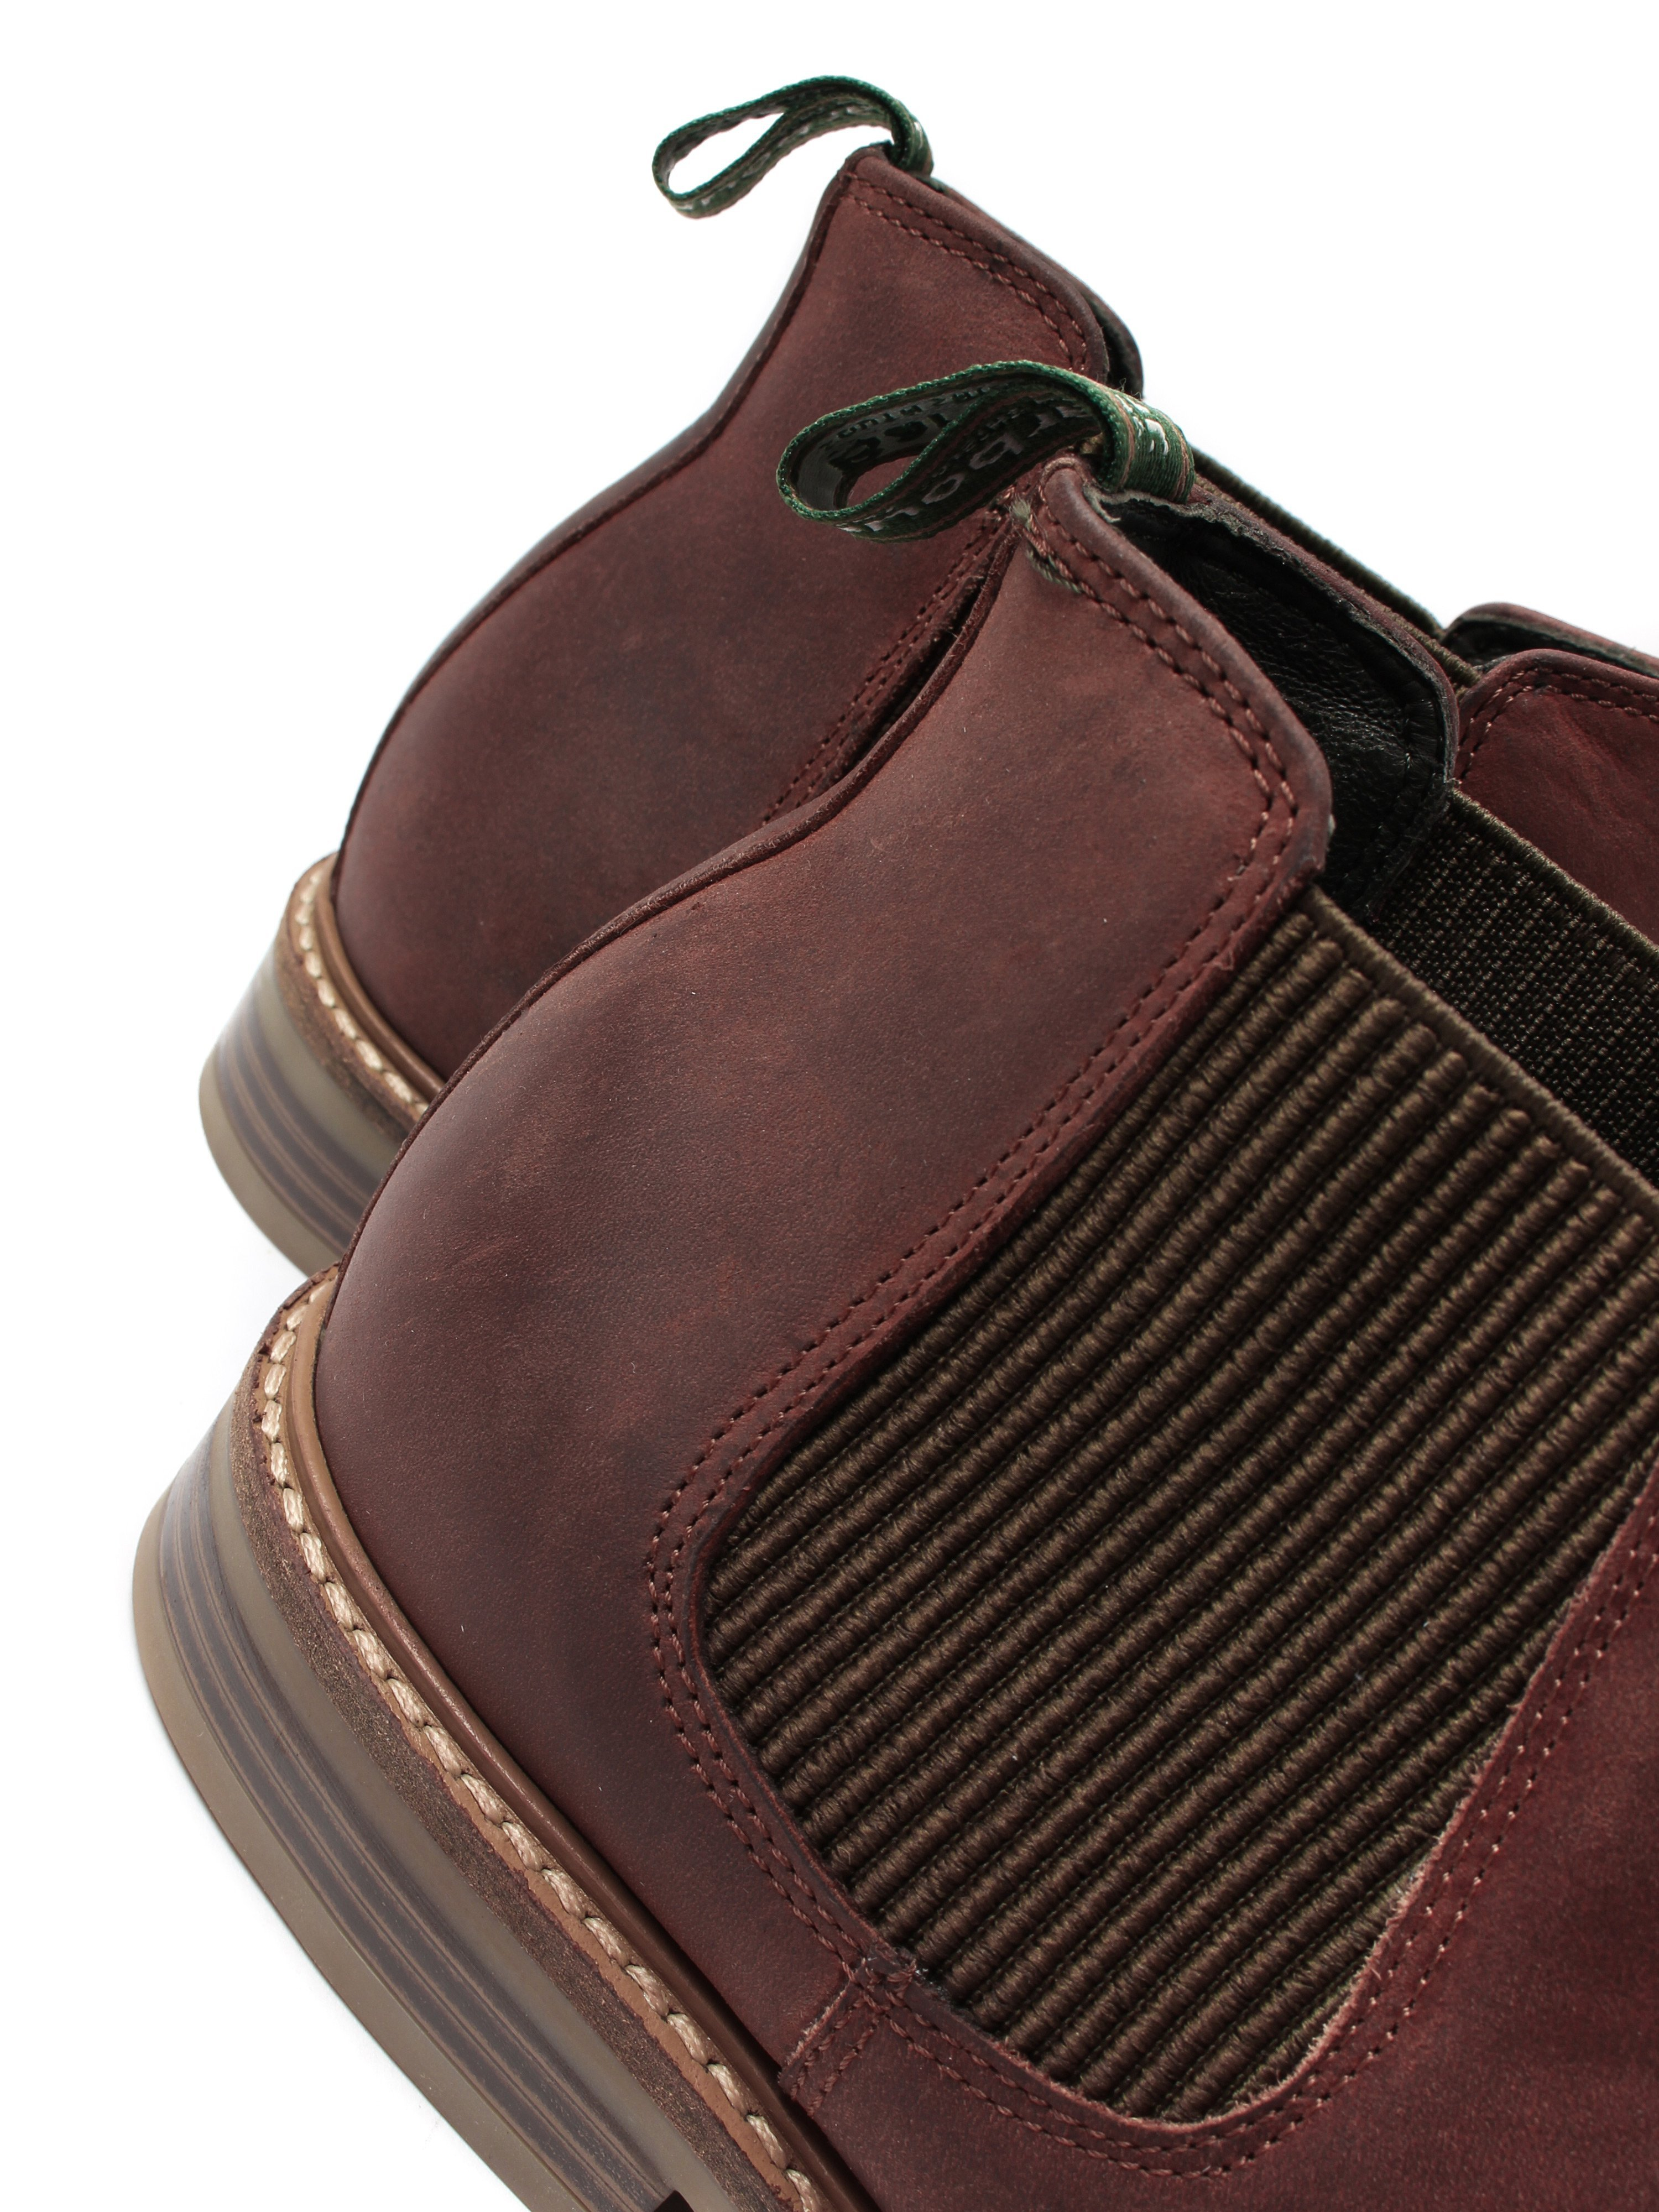 Barbour Men's Penshaw Leather Chelsea Boots - Timber Tan